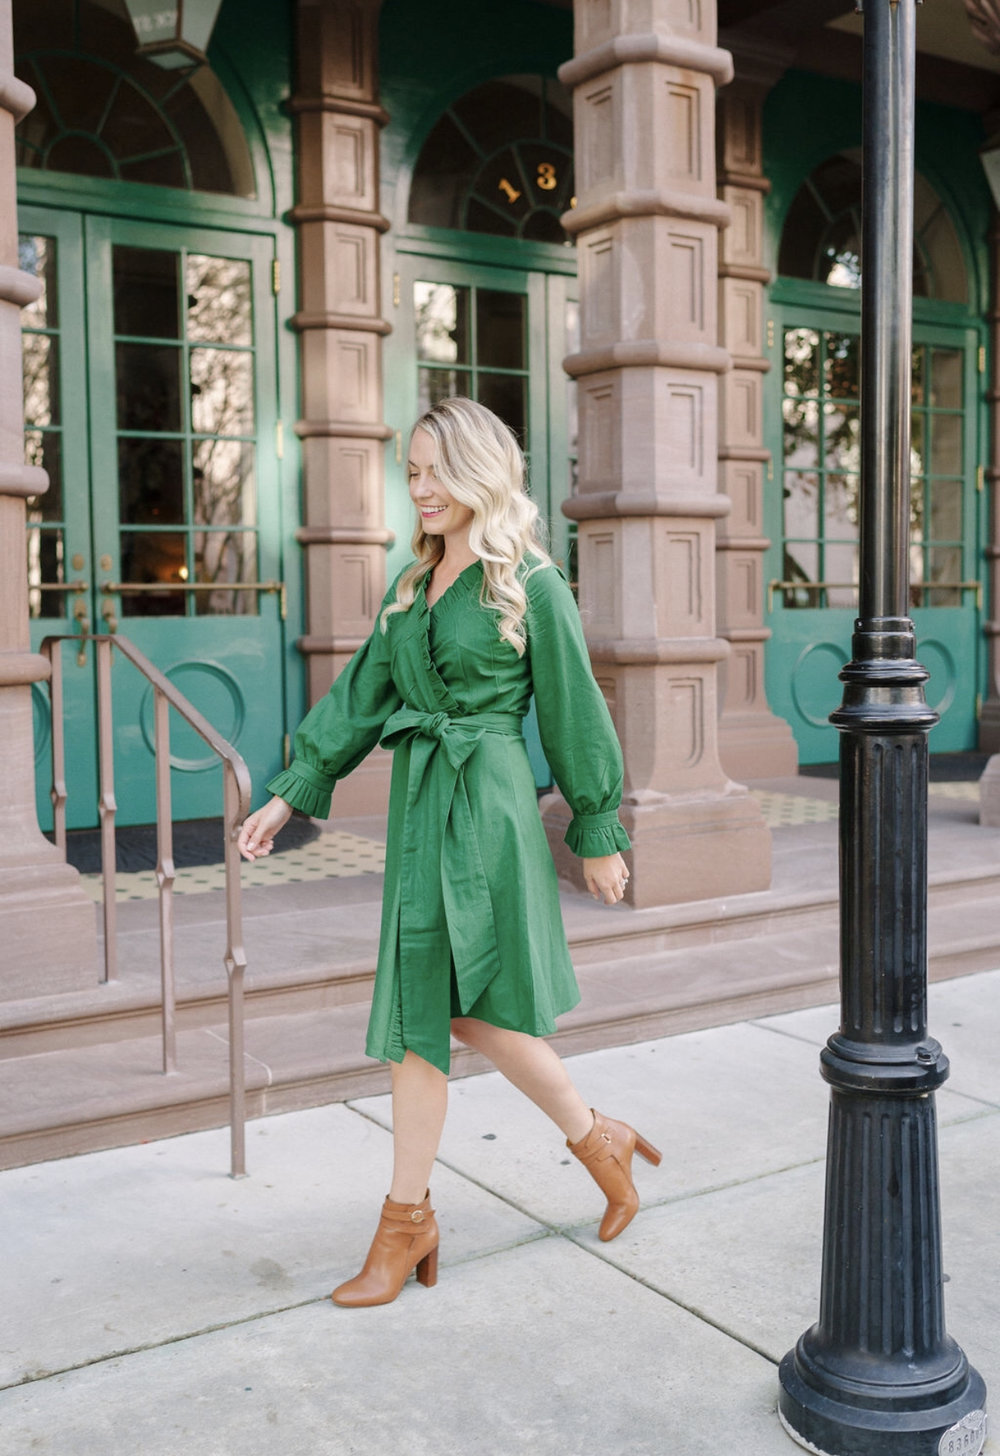 The JILLIAN dRESS - We collaborated with Jillian eversole of the blog rhyme & reason to create the perfect festive dress to wear the entire holiday season.